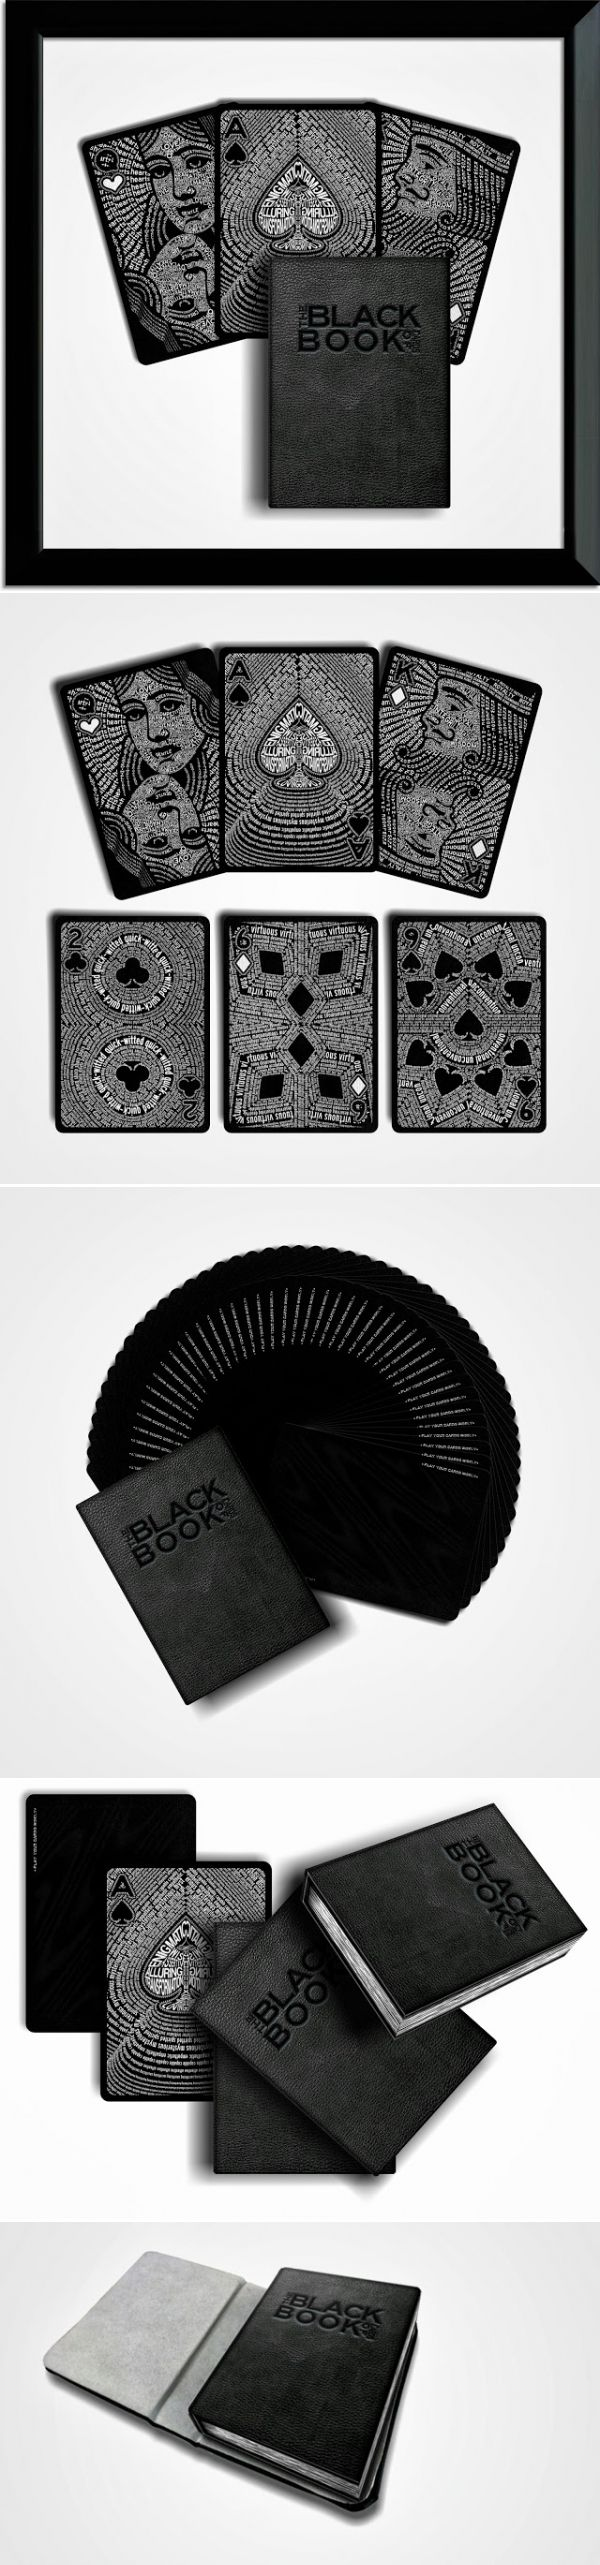 The Black Book of Cards - Typographic Deck... - a grouped images pin by Pinthemall.net - Pin Them All